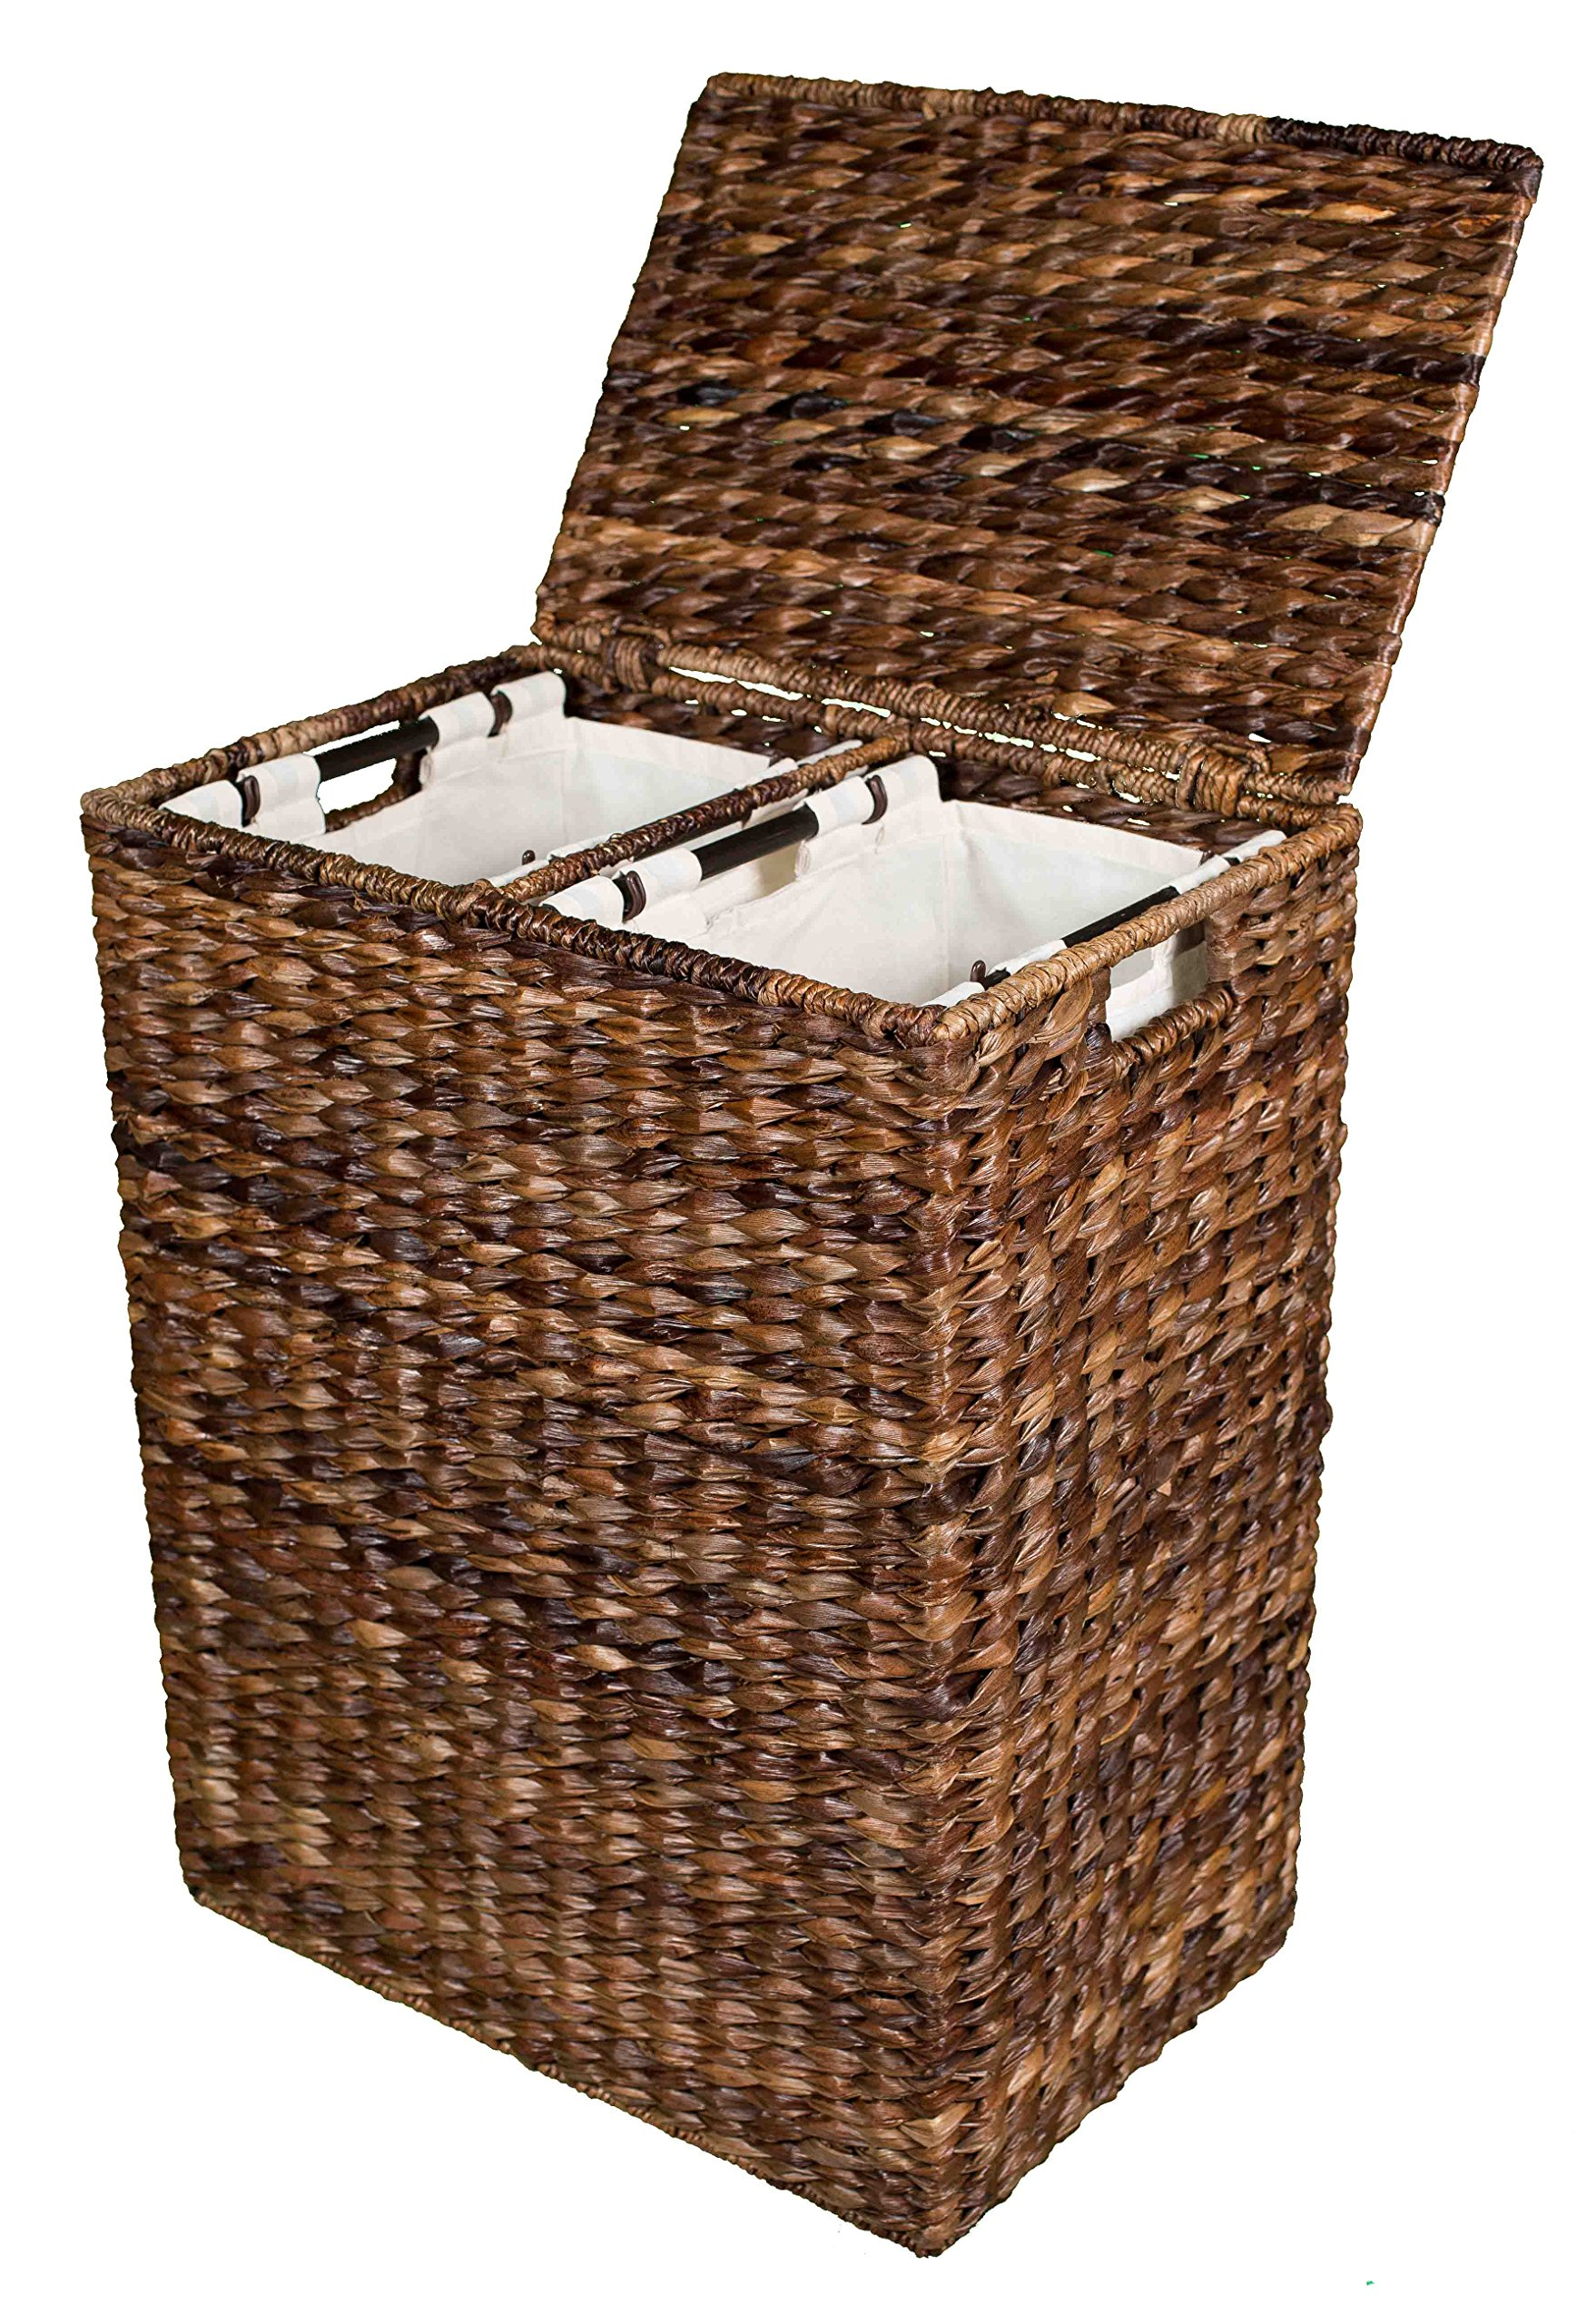 BirdRock Home Abaca Divided Laundry Hamper   Hand Woven   Machine Washable Cotton Canvas Liners by BirdRock Home